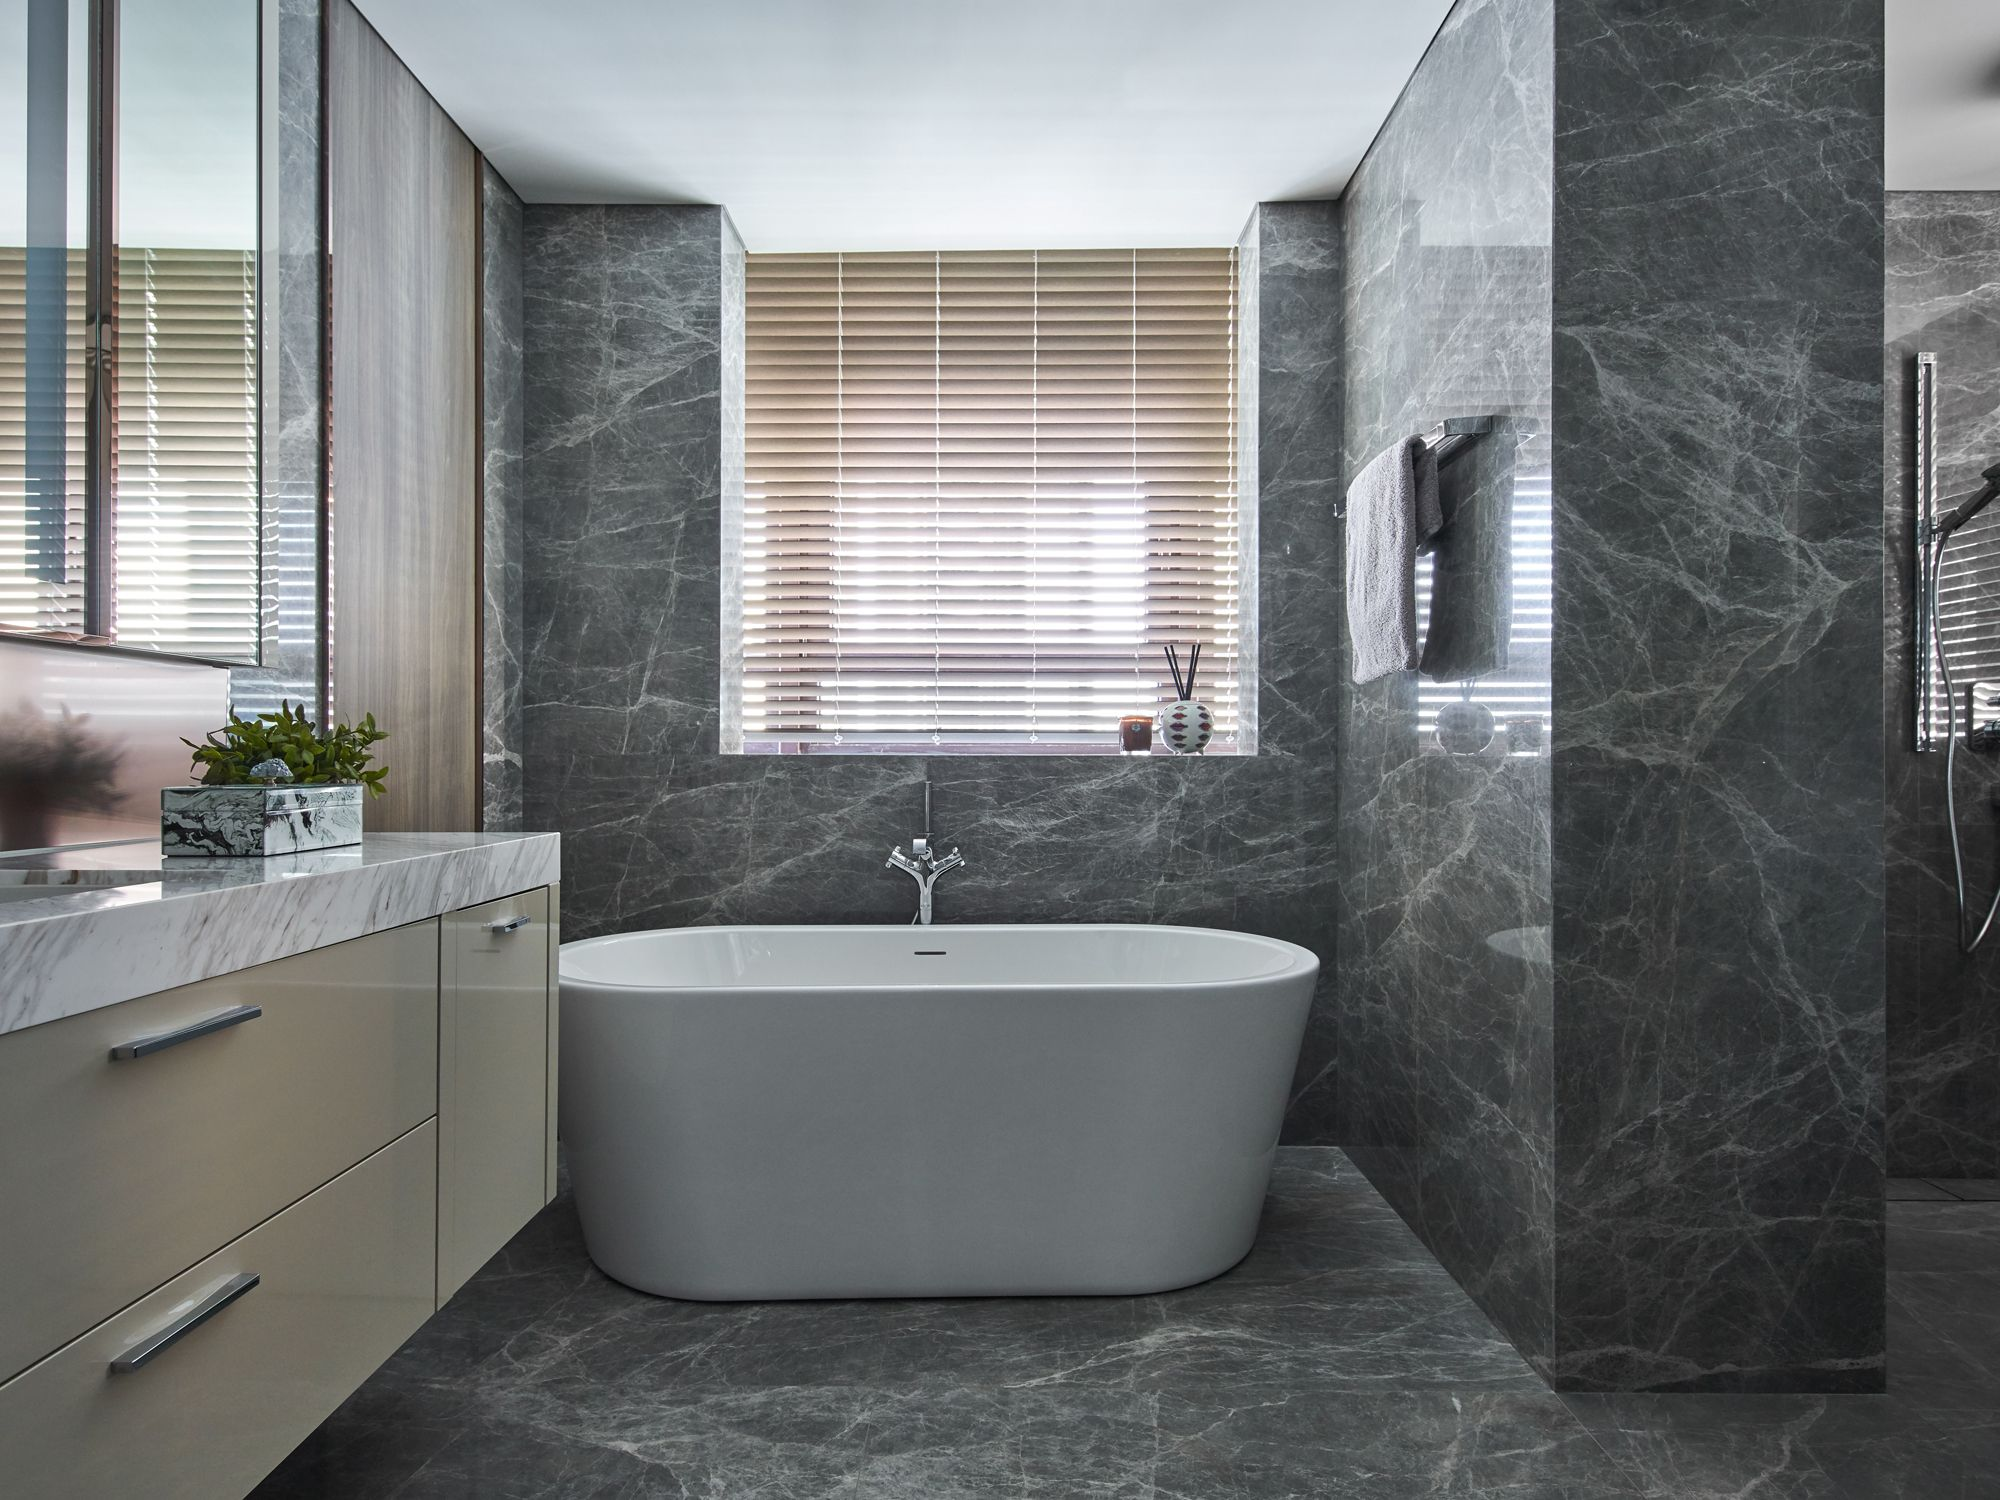 The master bathroom is a tranquil space opulently clad in marble